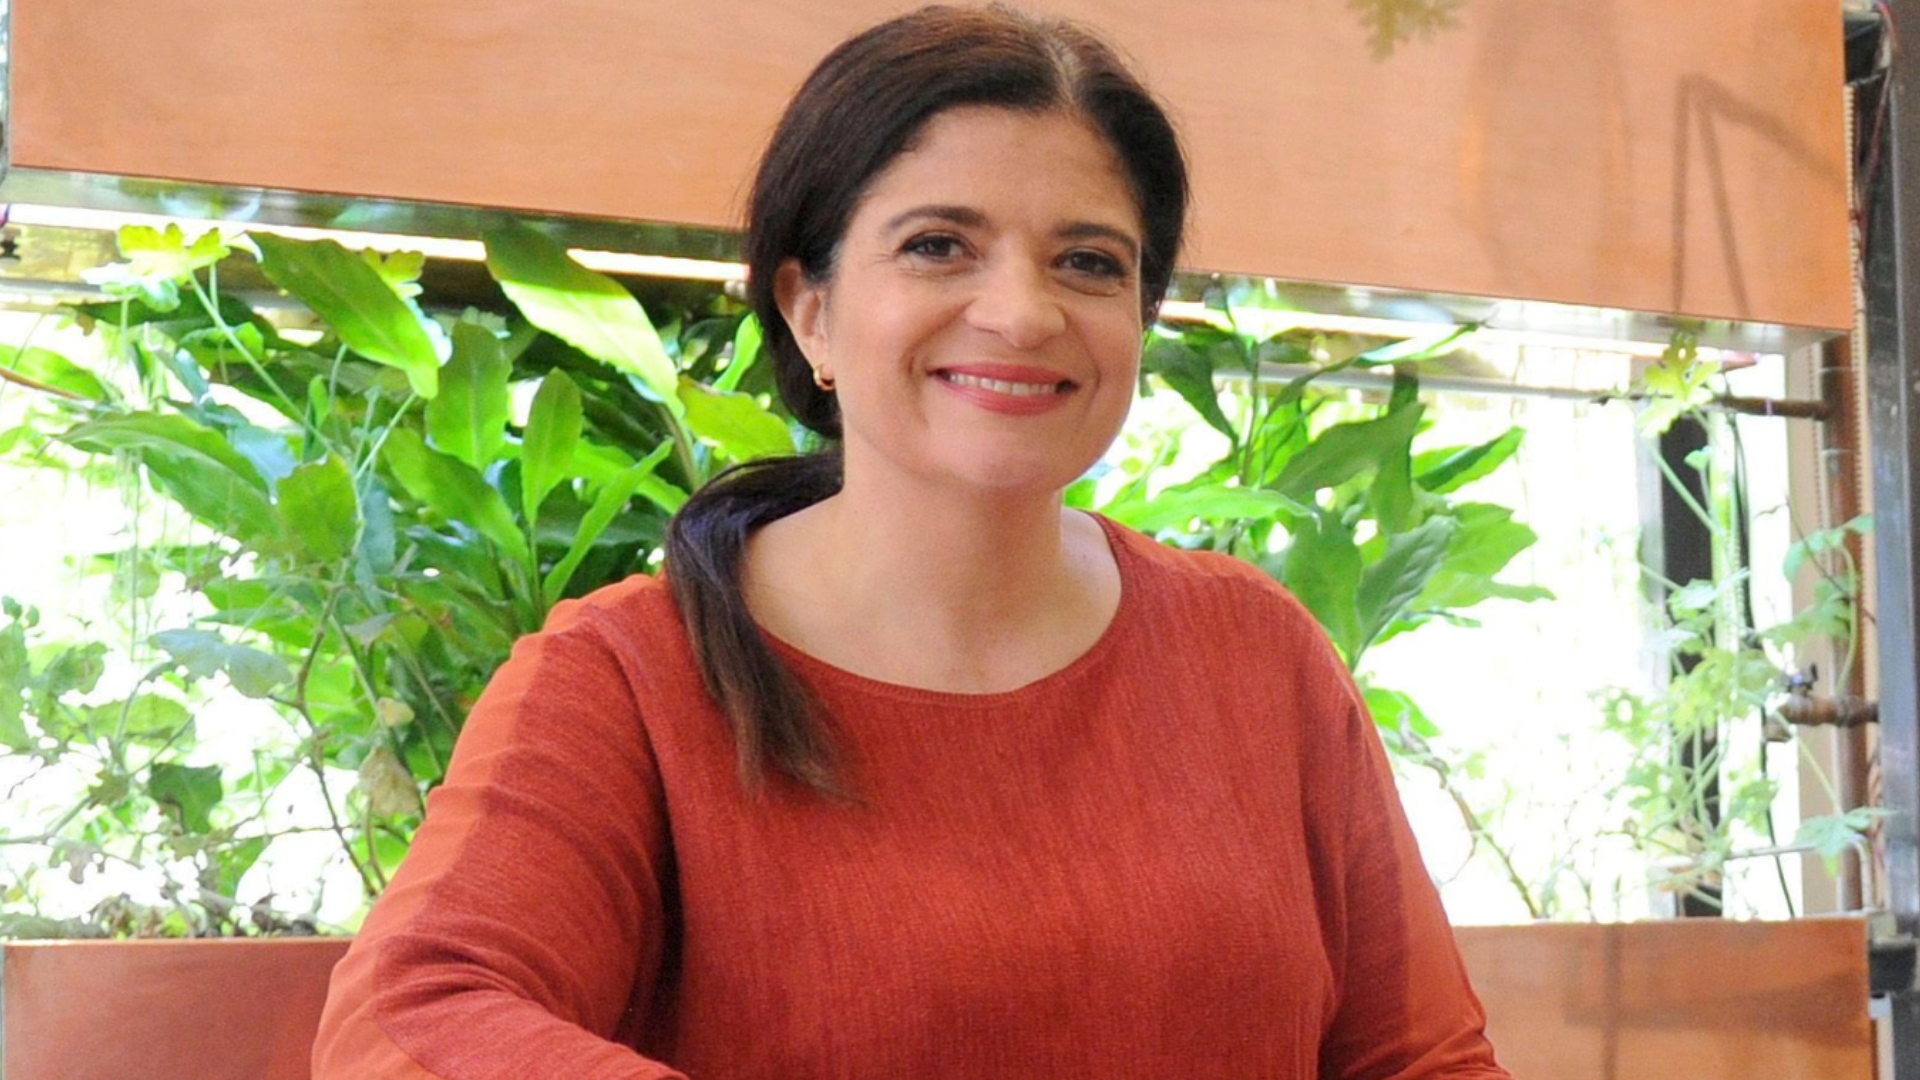 Alex Guarnaschelli Shares A Yummy Recipe For Your New Go-to Summer Drink photo